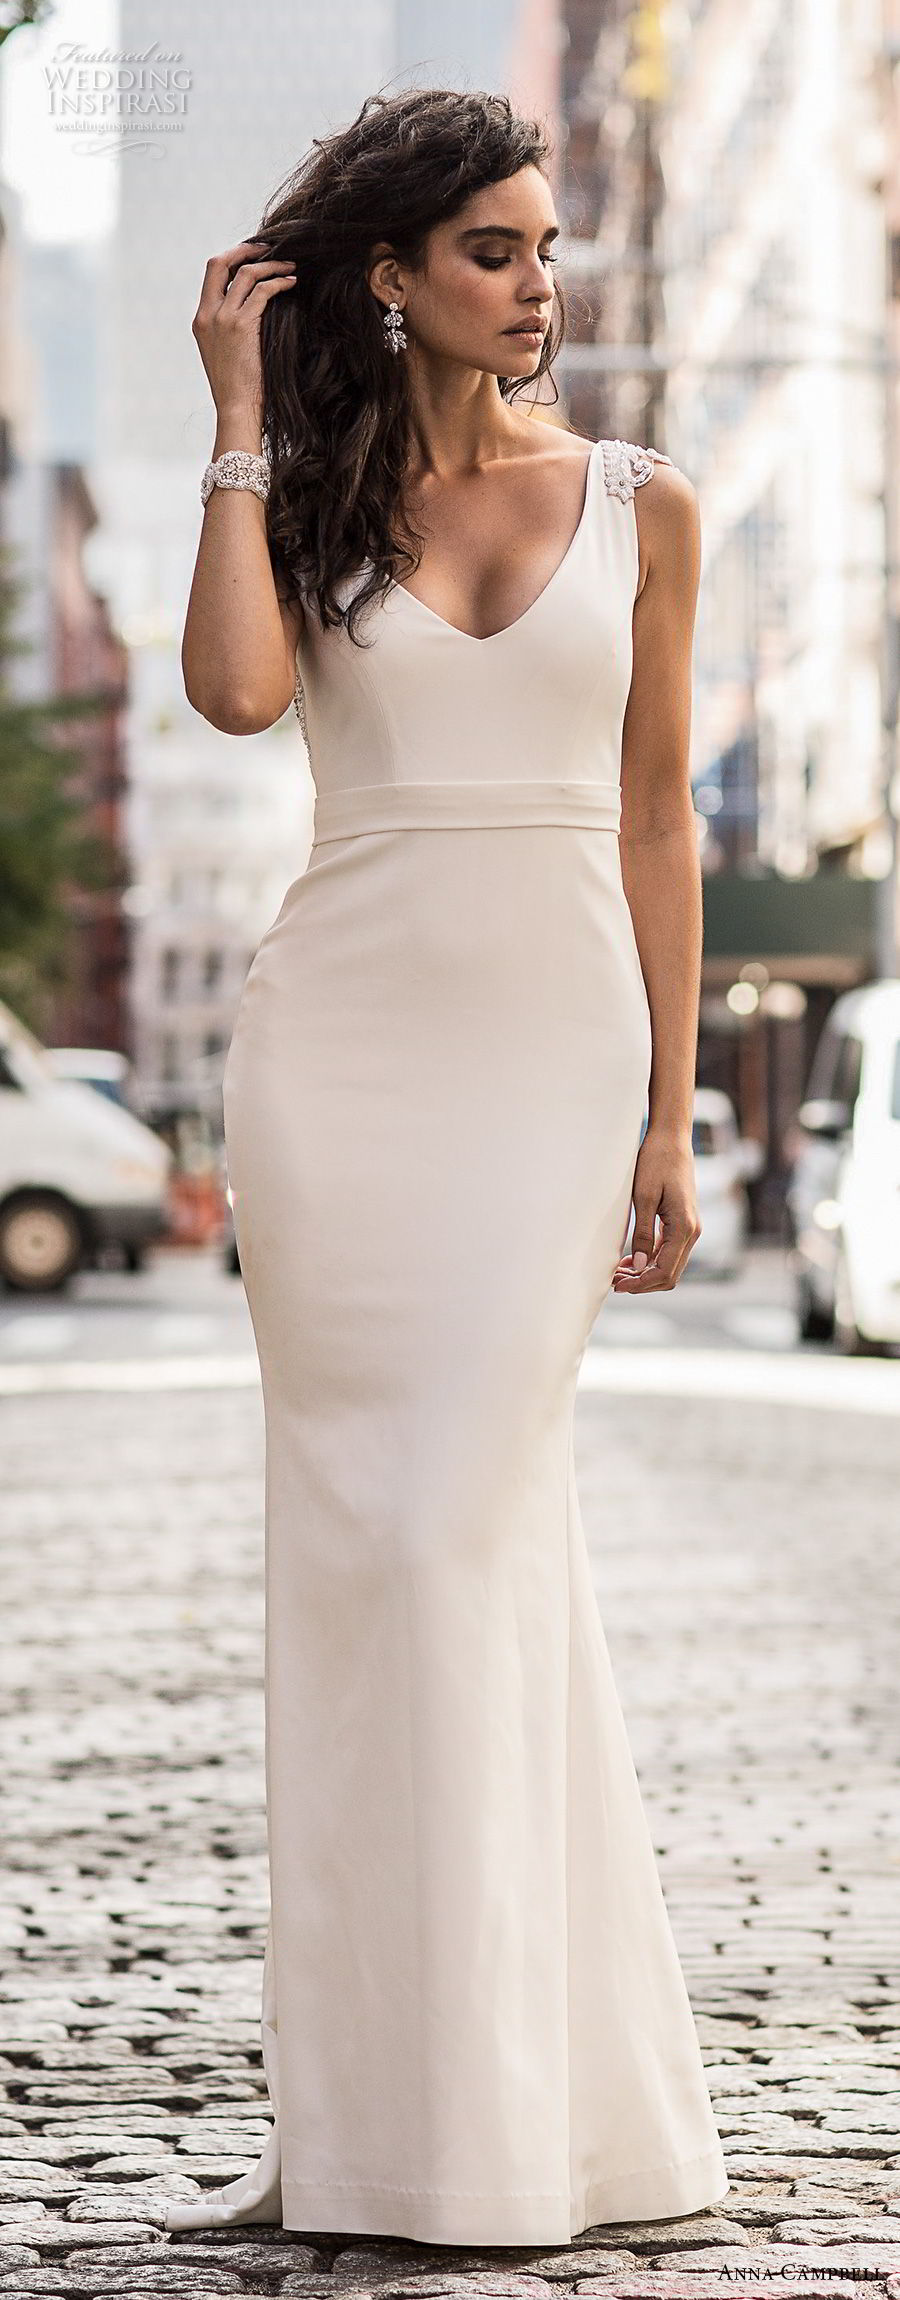 anna cambell fall 2018 bridal cap sleeves v neck simple clean elegant sheath wedding dress open v back sweep train (2) mv